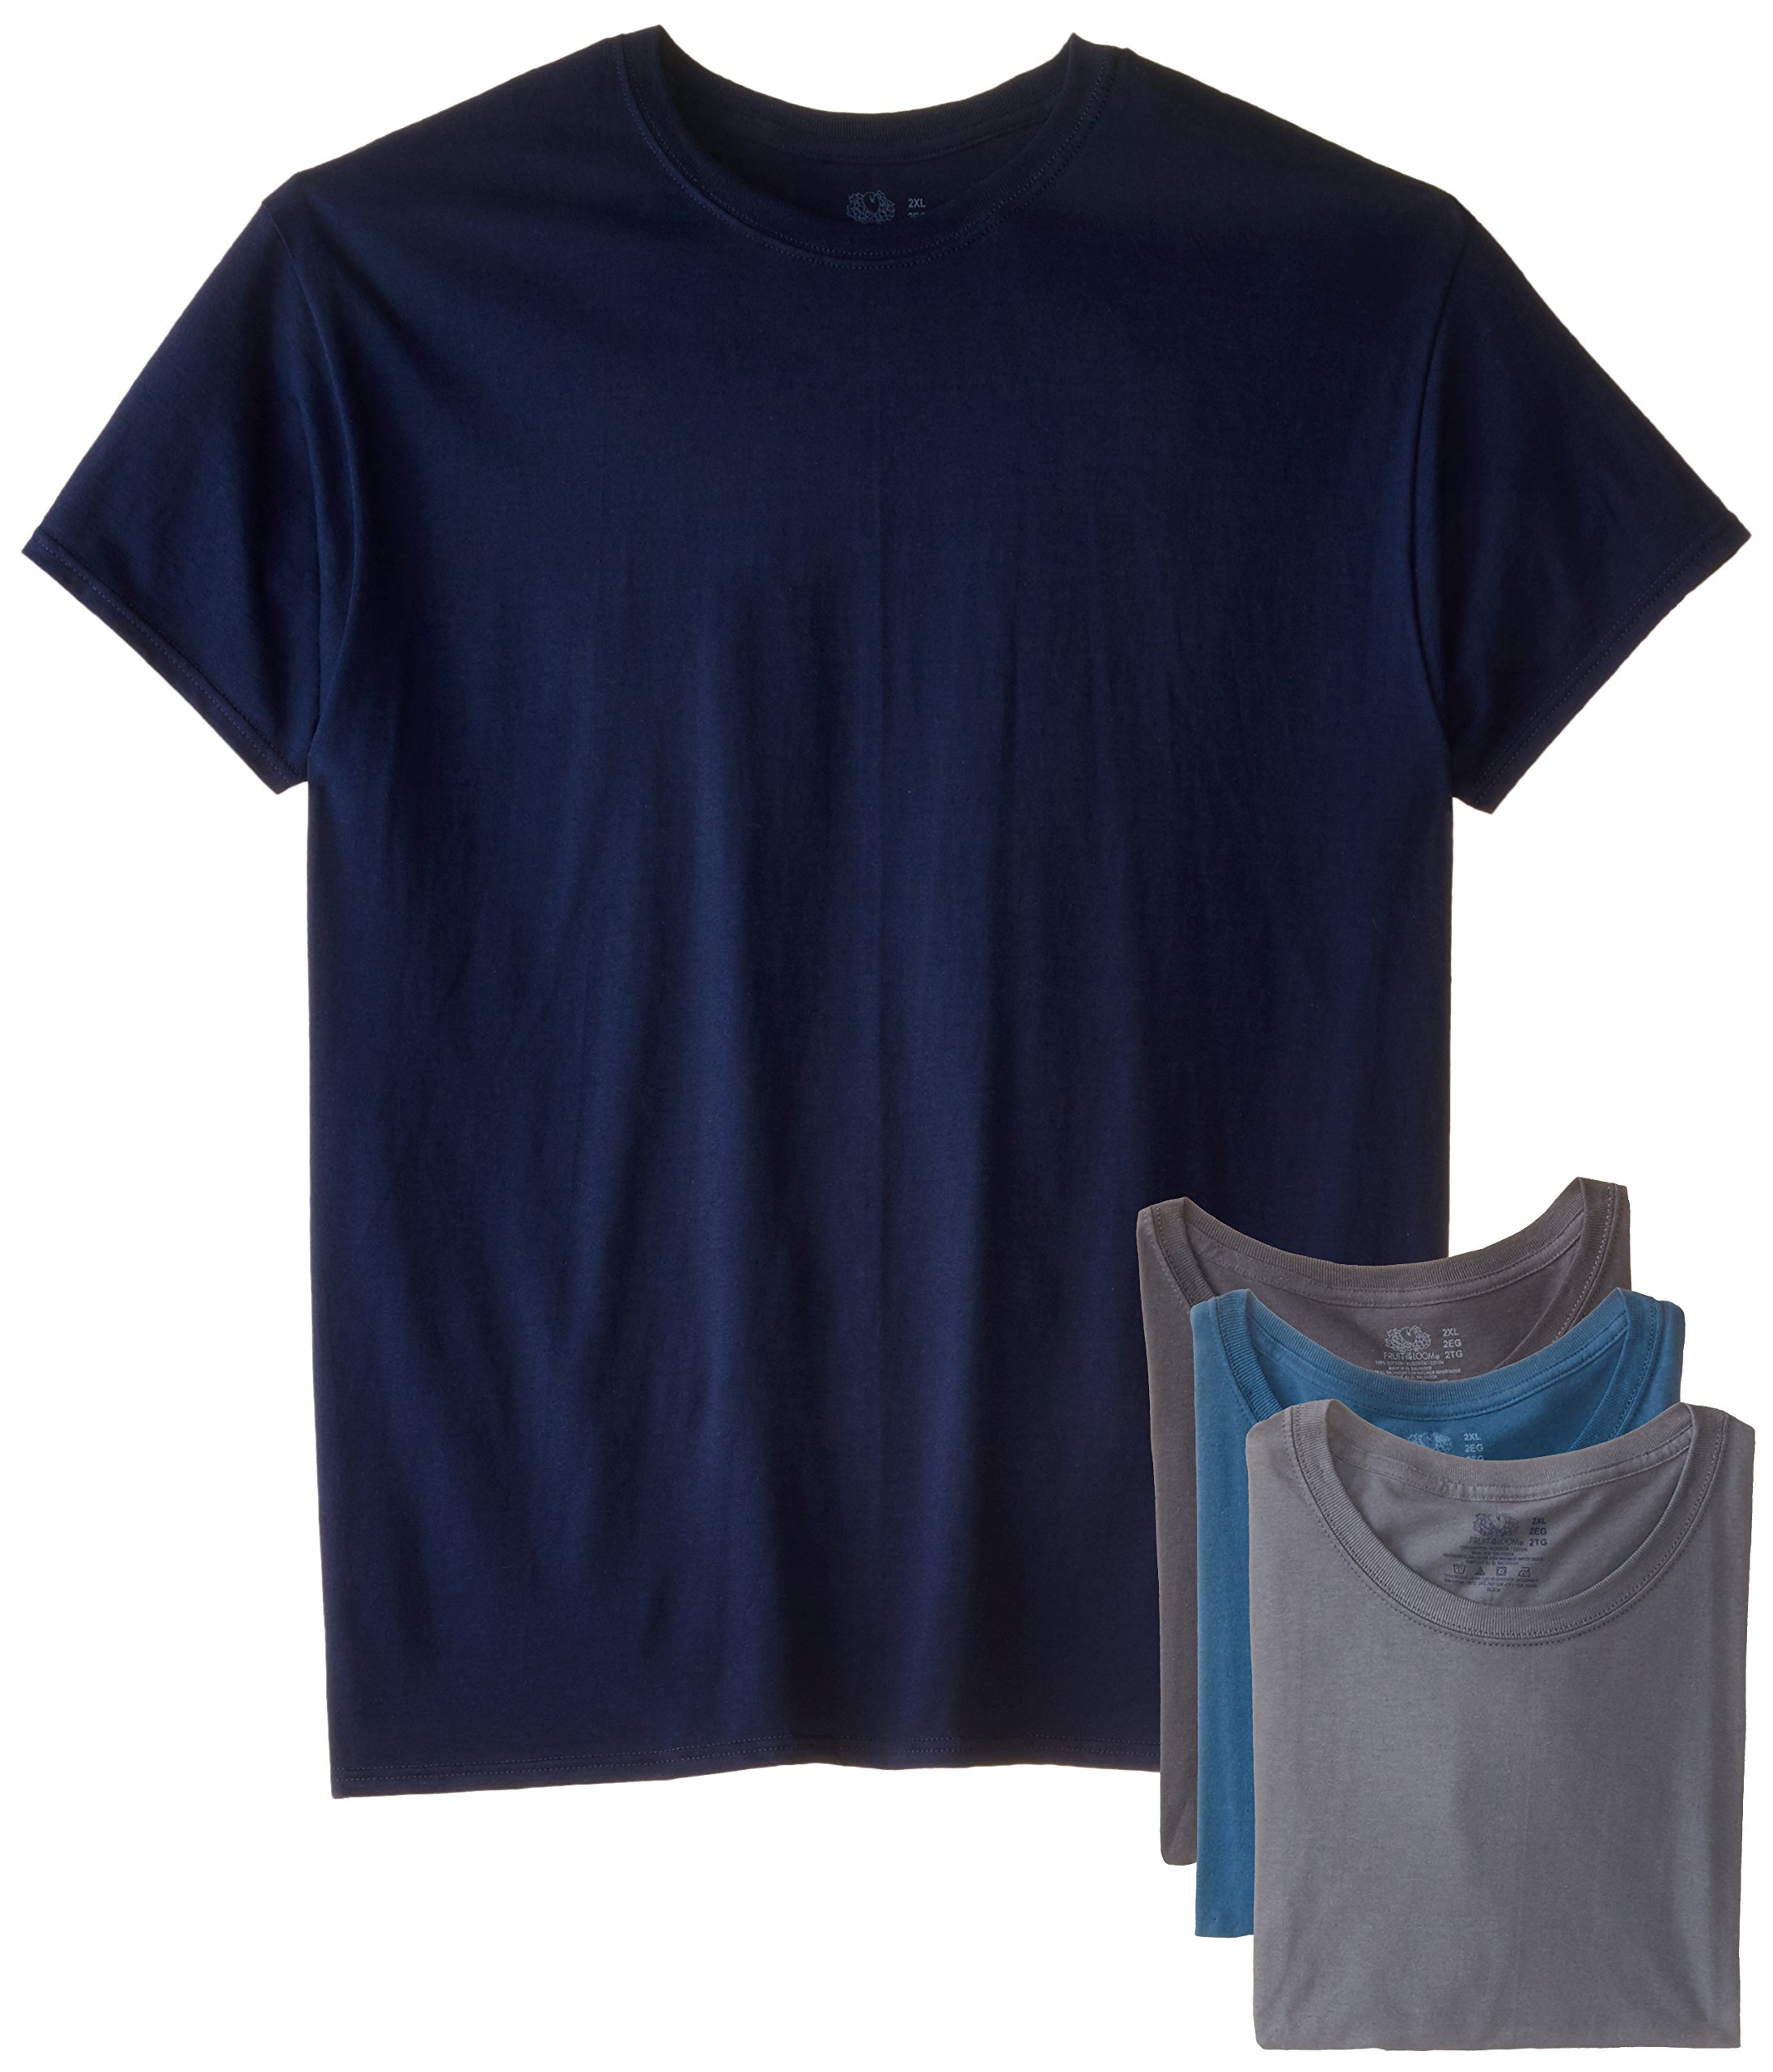 Fruit of the Loom Men's Crew Neck T-Shirt (Pack of 4), Assorted, XX-Large